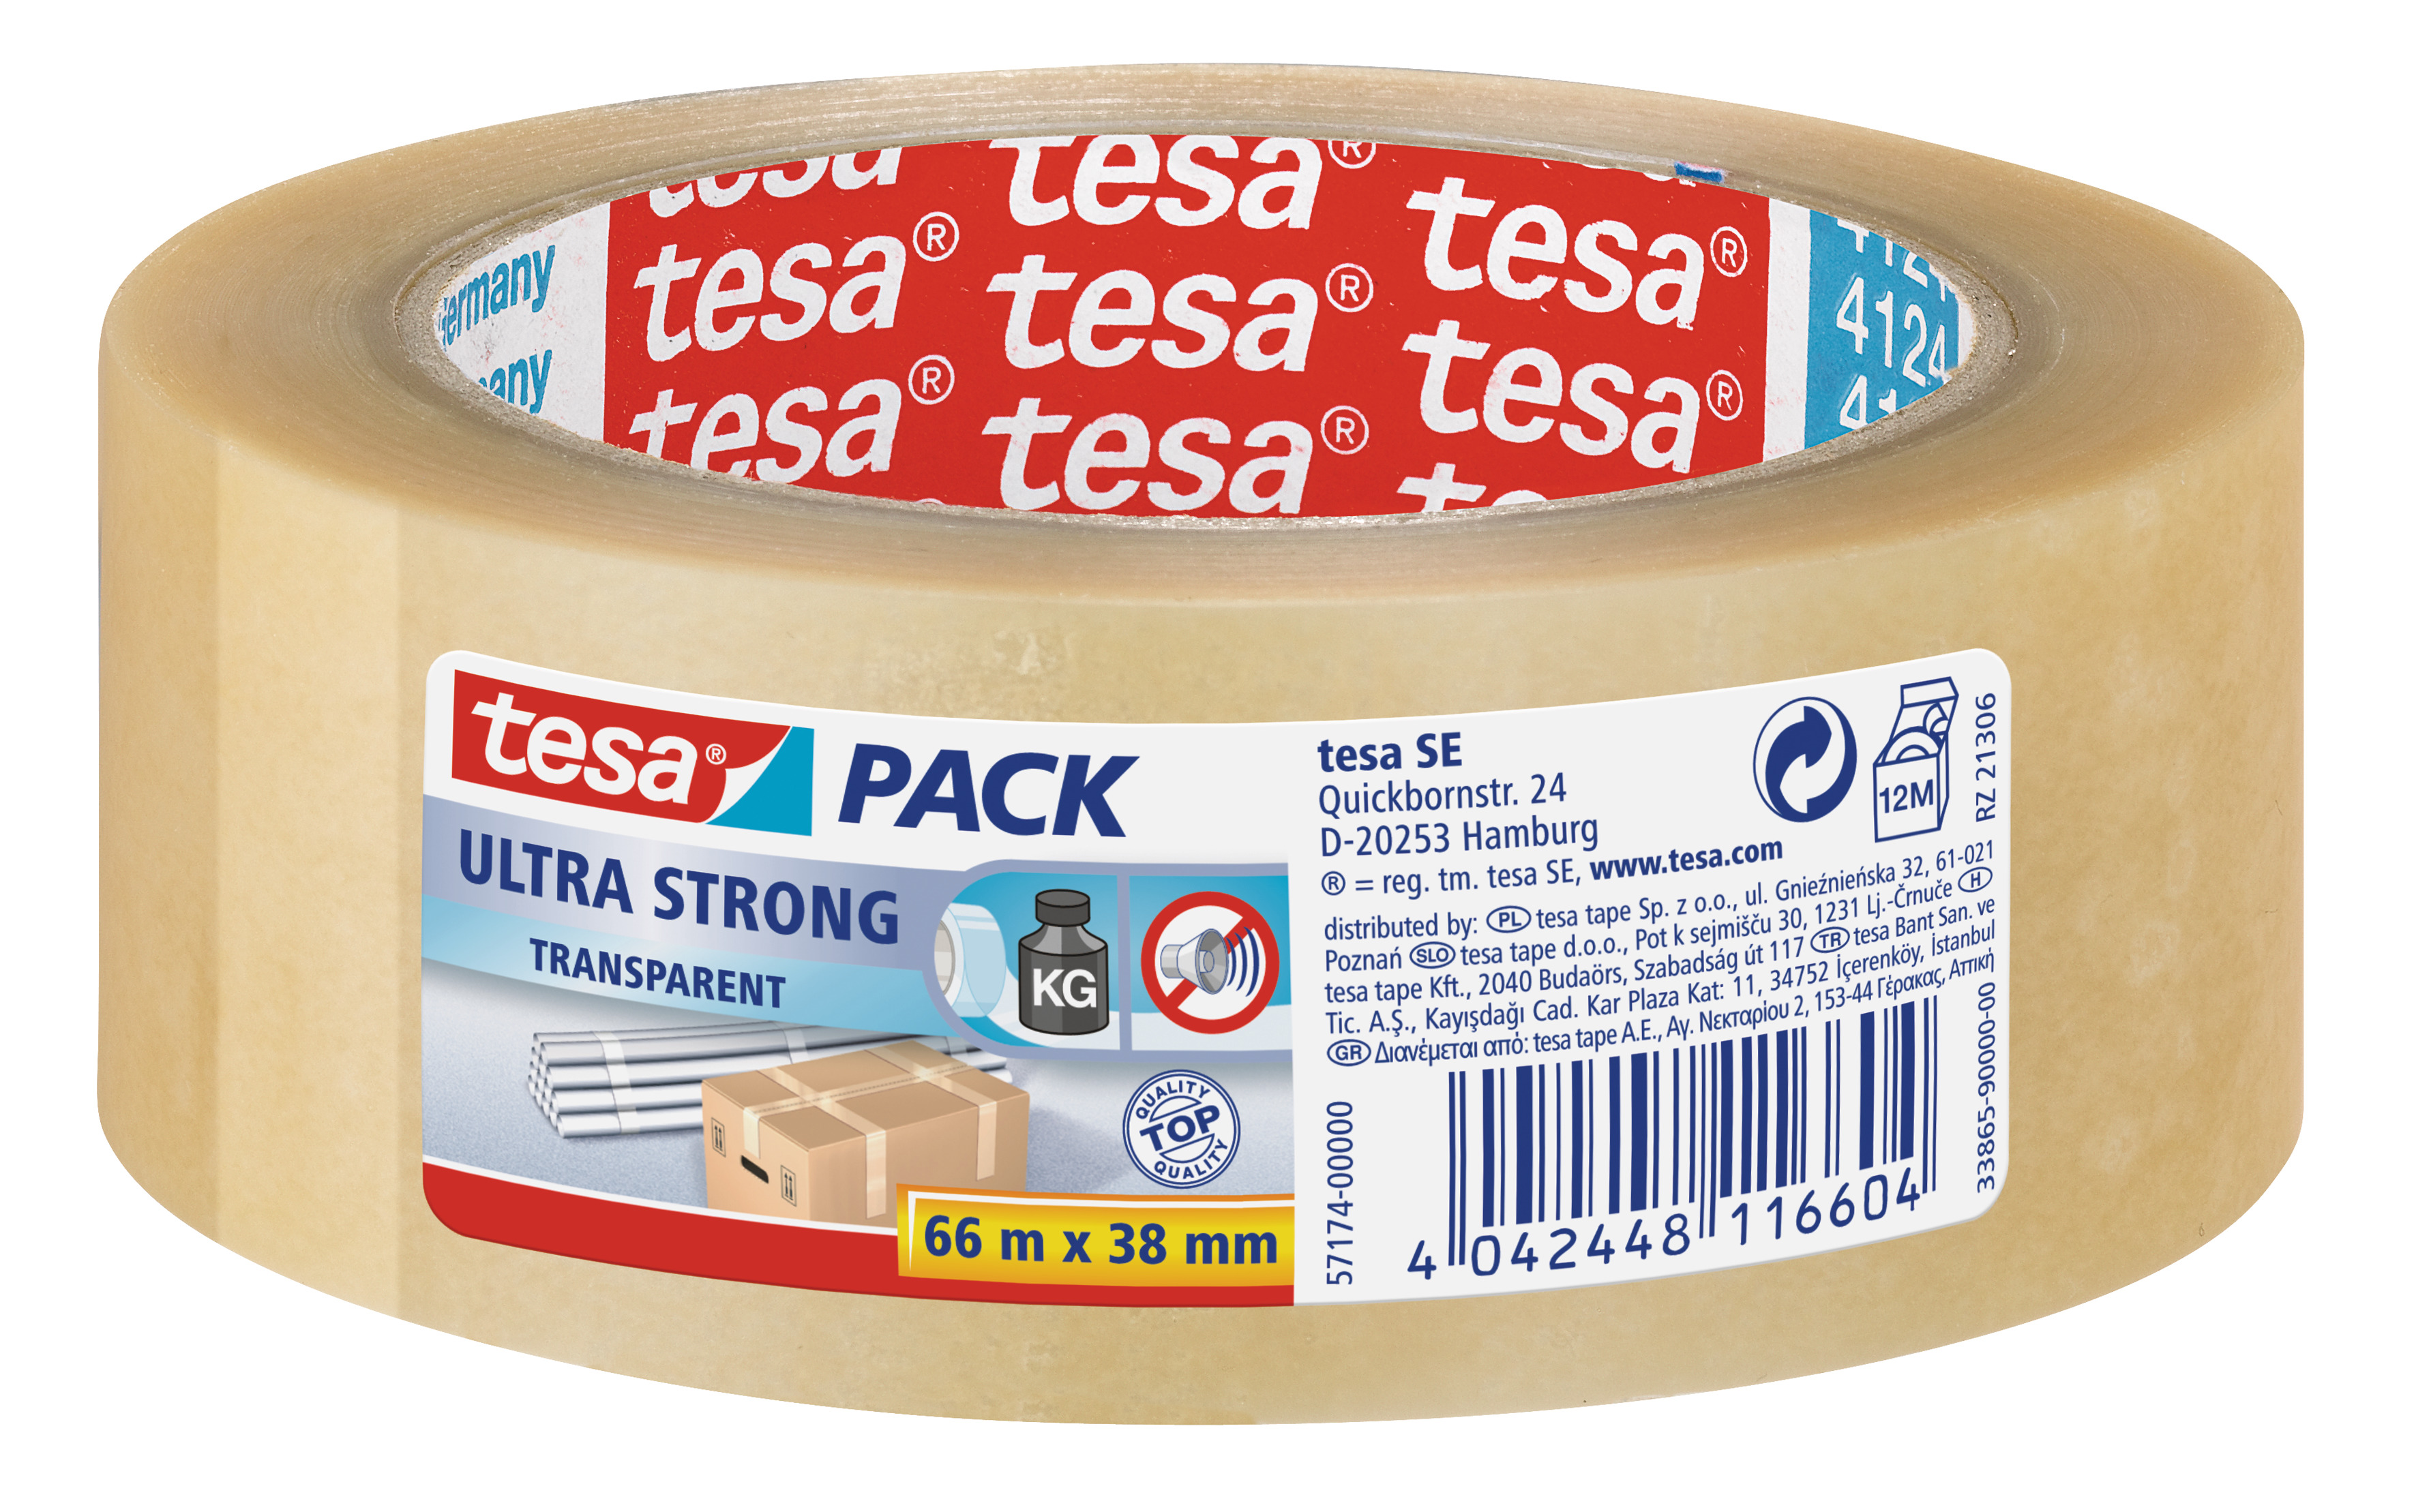 GP: 0,04 EUR/m tesa tesapack ultra strong, transparent ( PVC ) 66m x 38mm